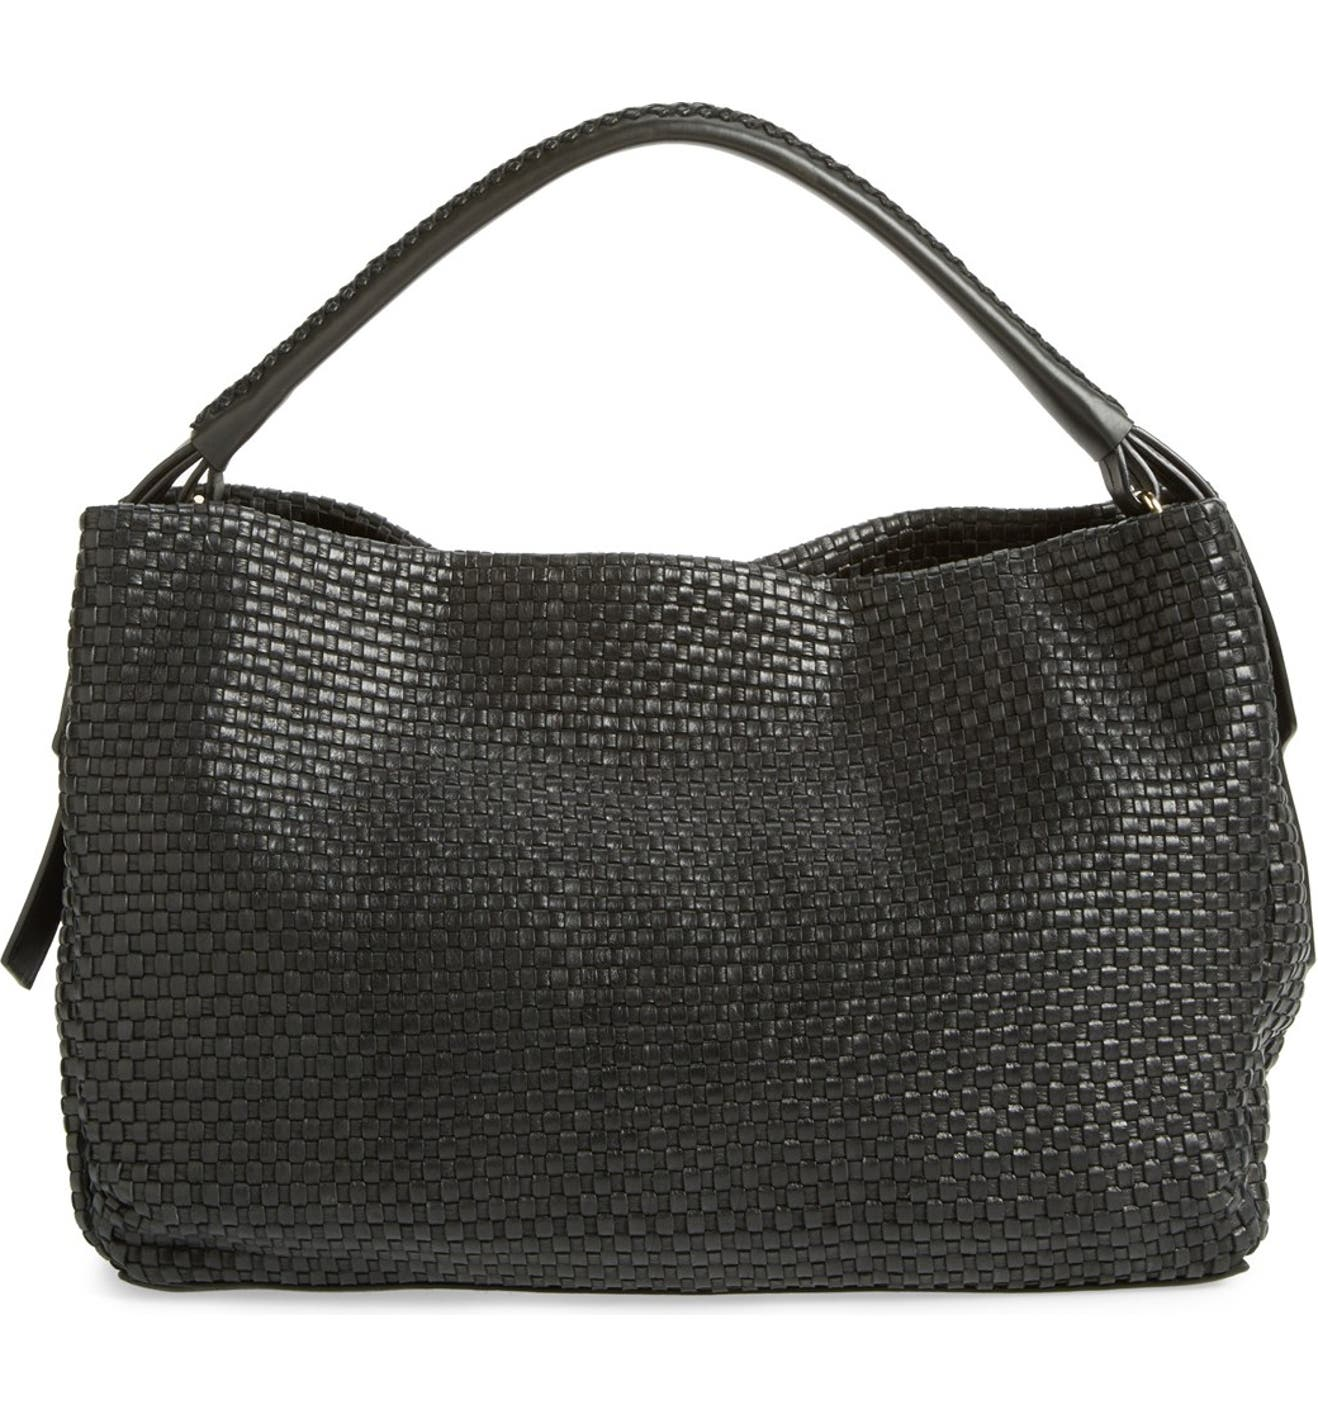 14395452afd Cole Haan 'Bethany' Woven Leather Hobo Bag   Nordstrom